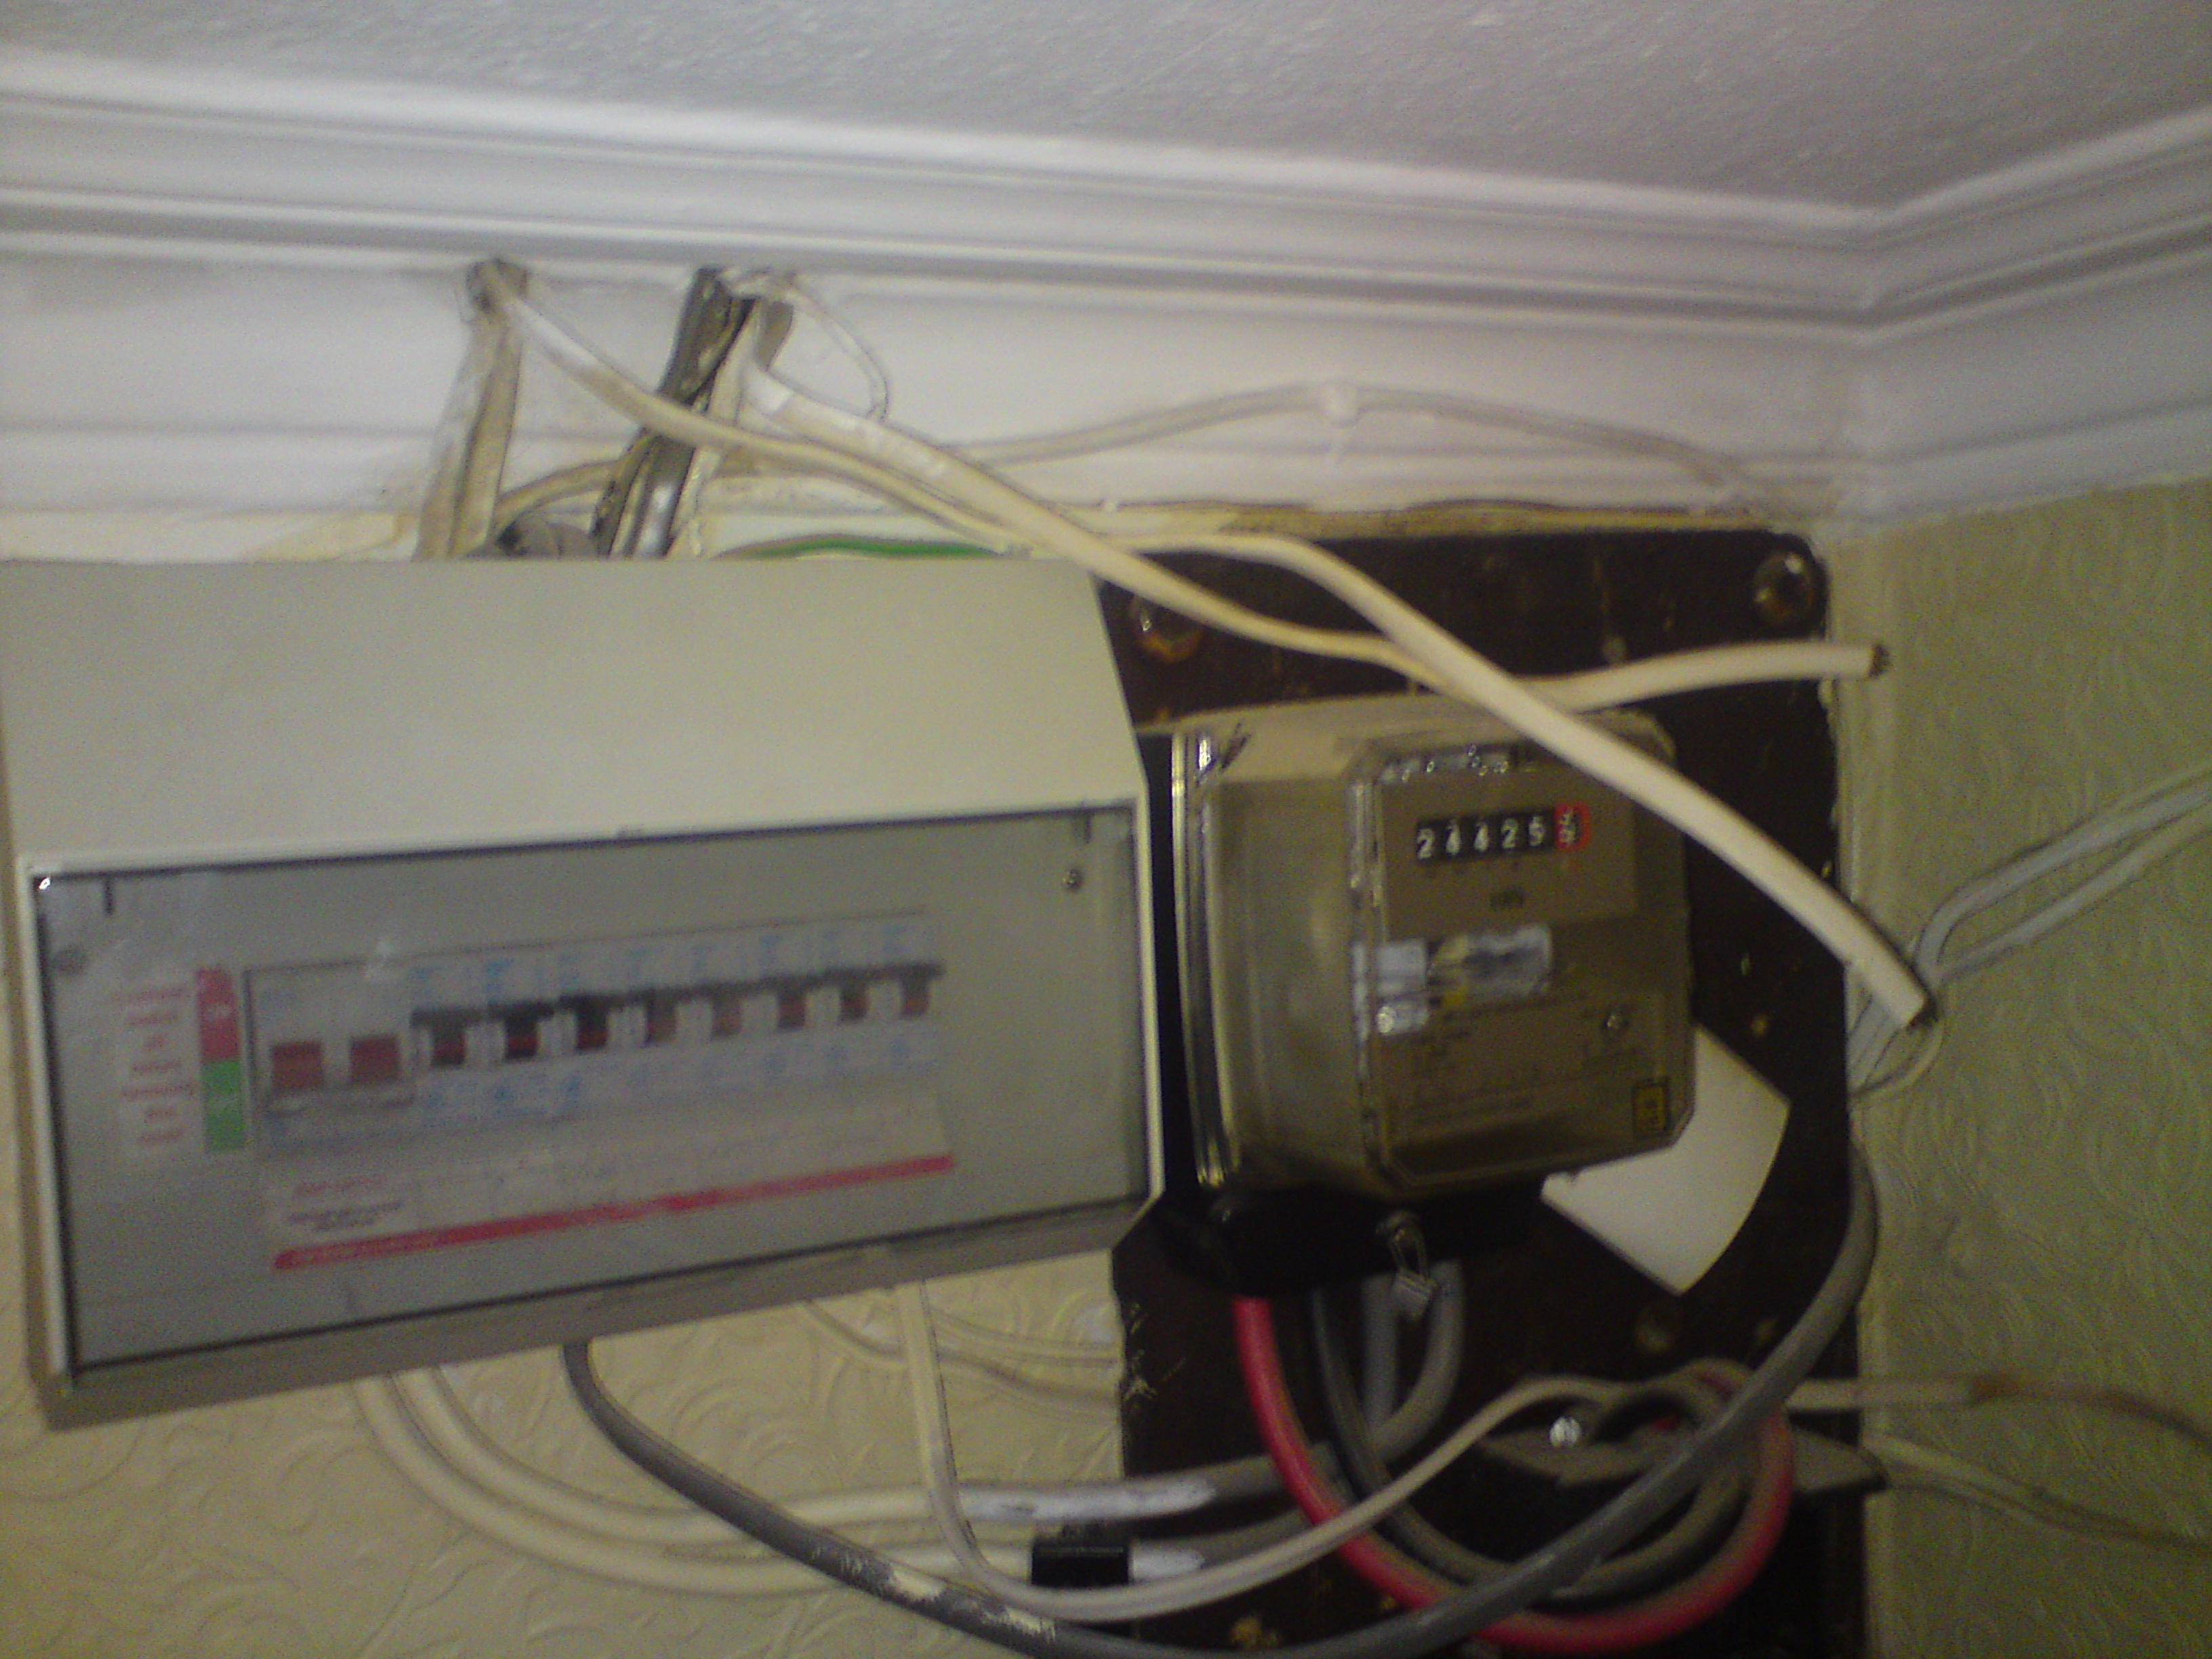 Electrical Test And Inspection Dangerous Wiring A Fuse Board Modern Fuseboard But Is It Safe Just Looks Bit Untidy There More Than That Wrong Hereafter Of Attention We Now Have Main Bonding Rcd